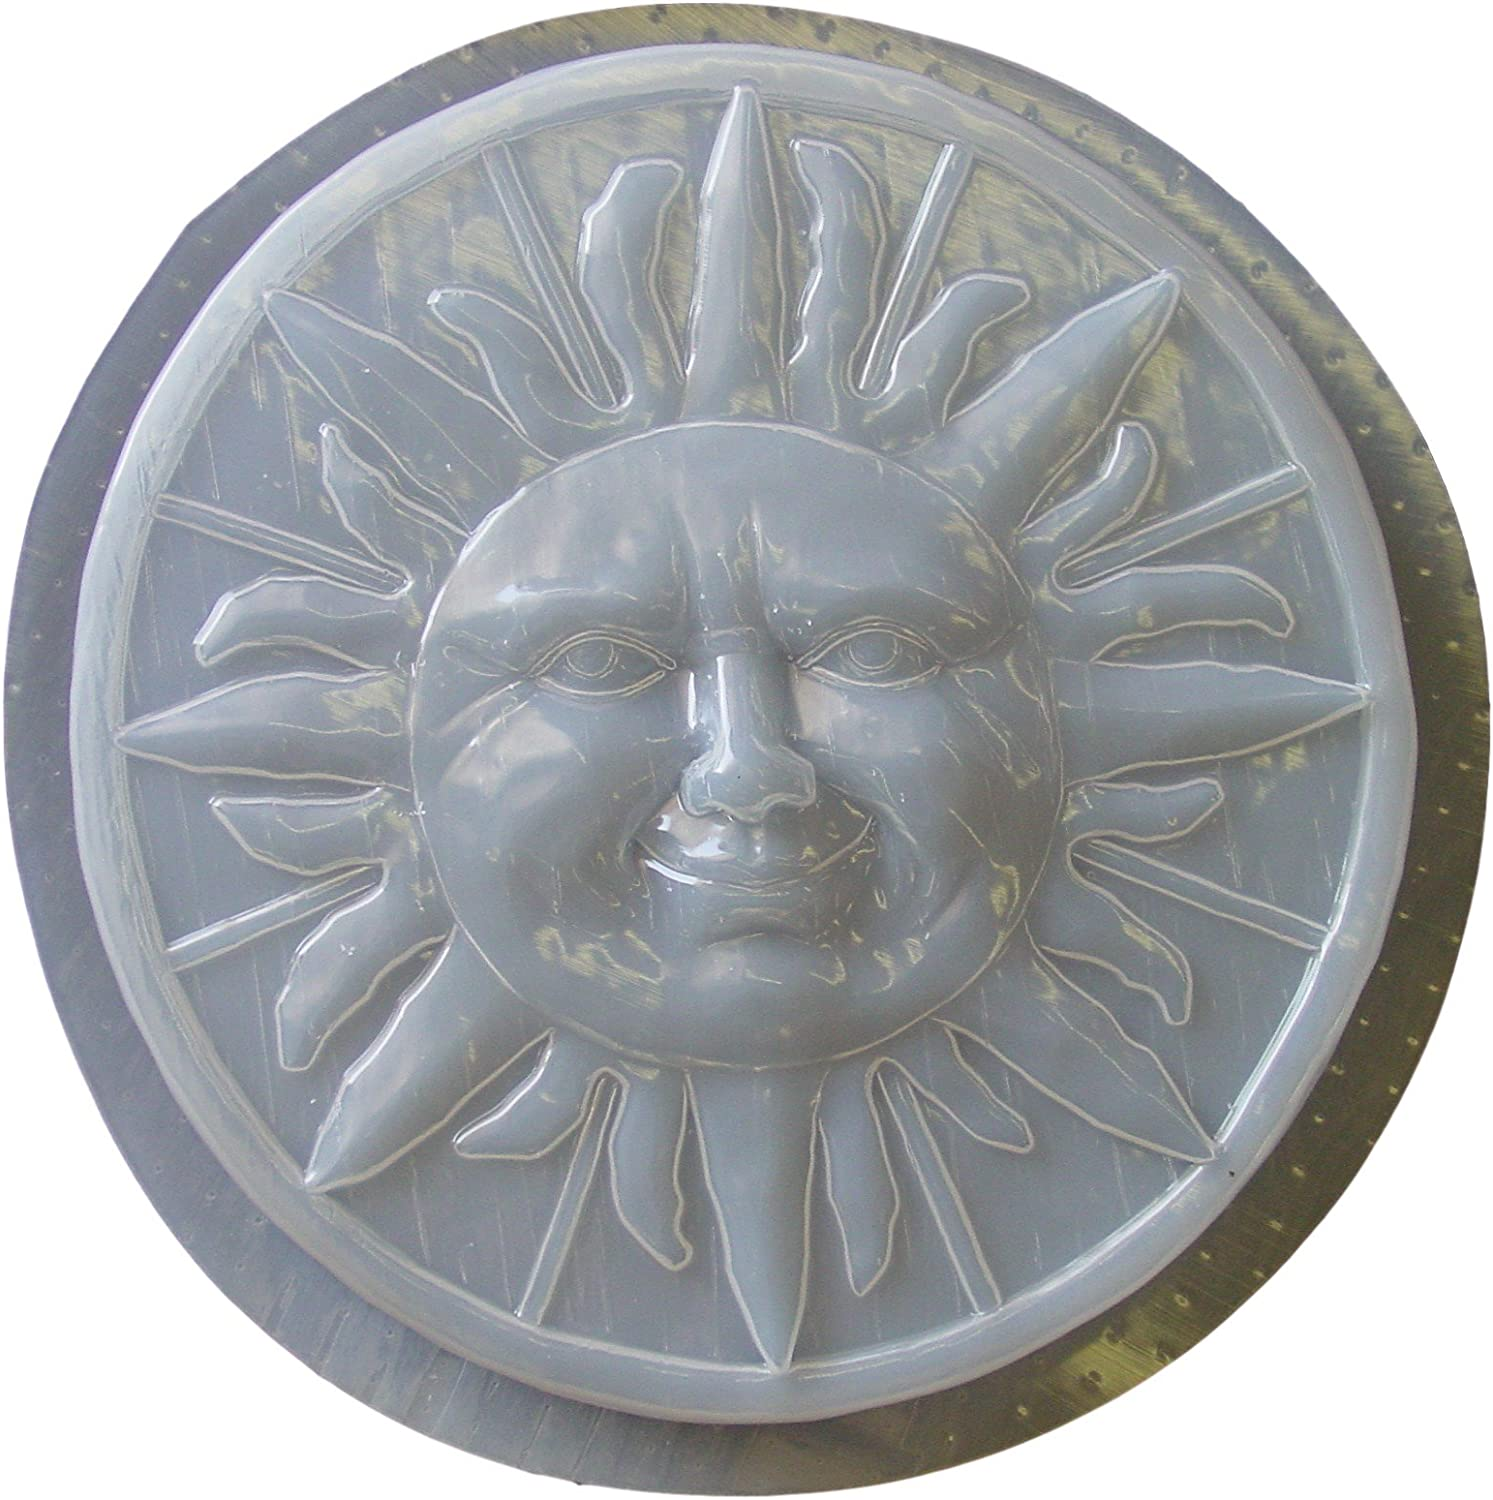 Sun with Border Stepping Stone Plaster or Concrete Mold 1141 Moldcreations